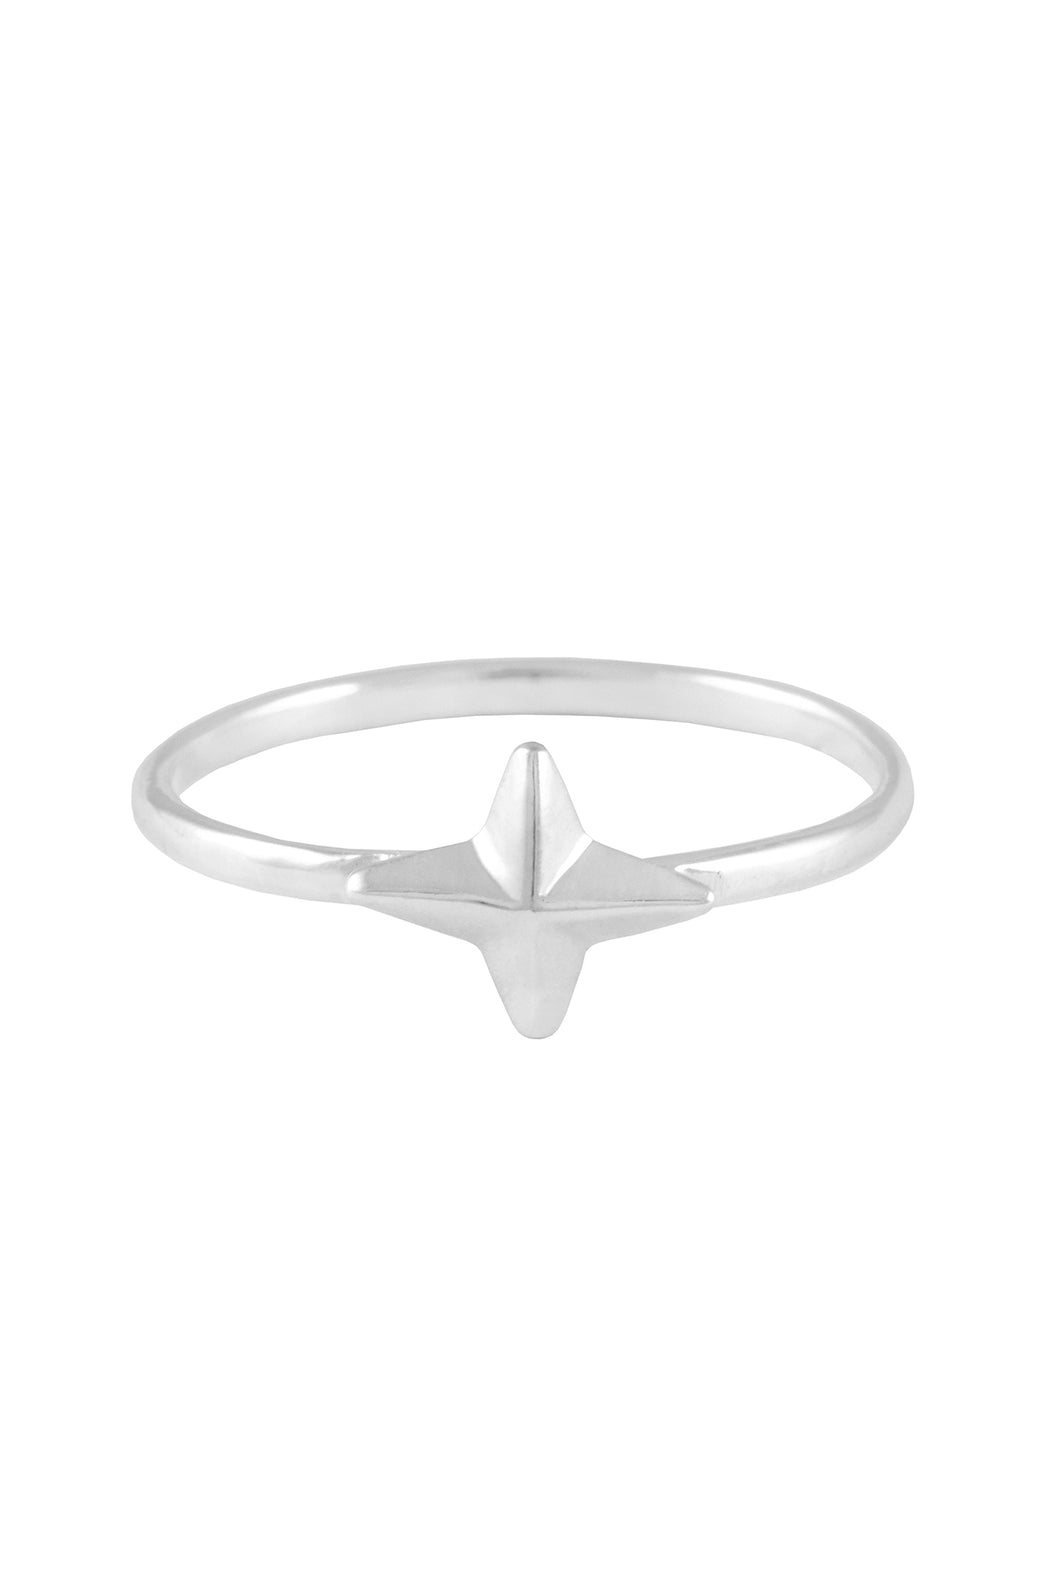 Four pointed star ring. Silver